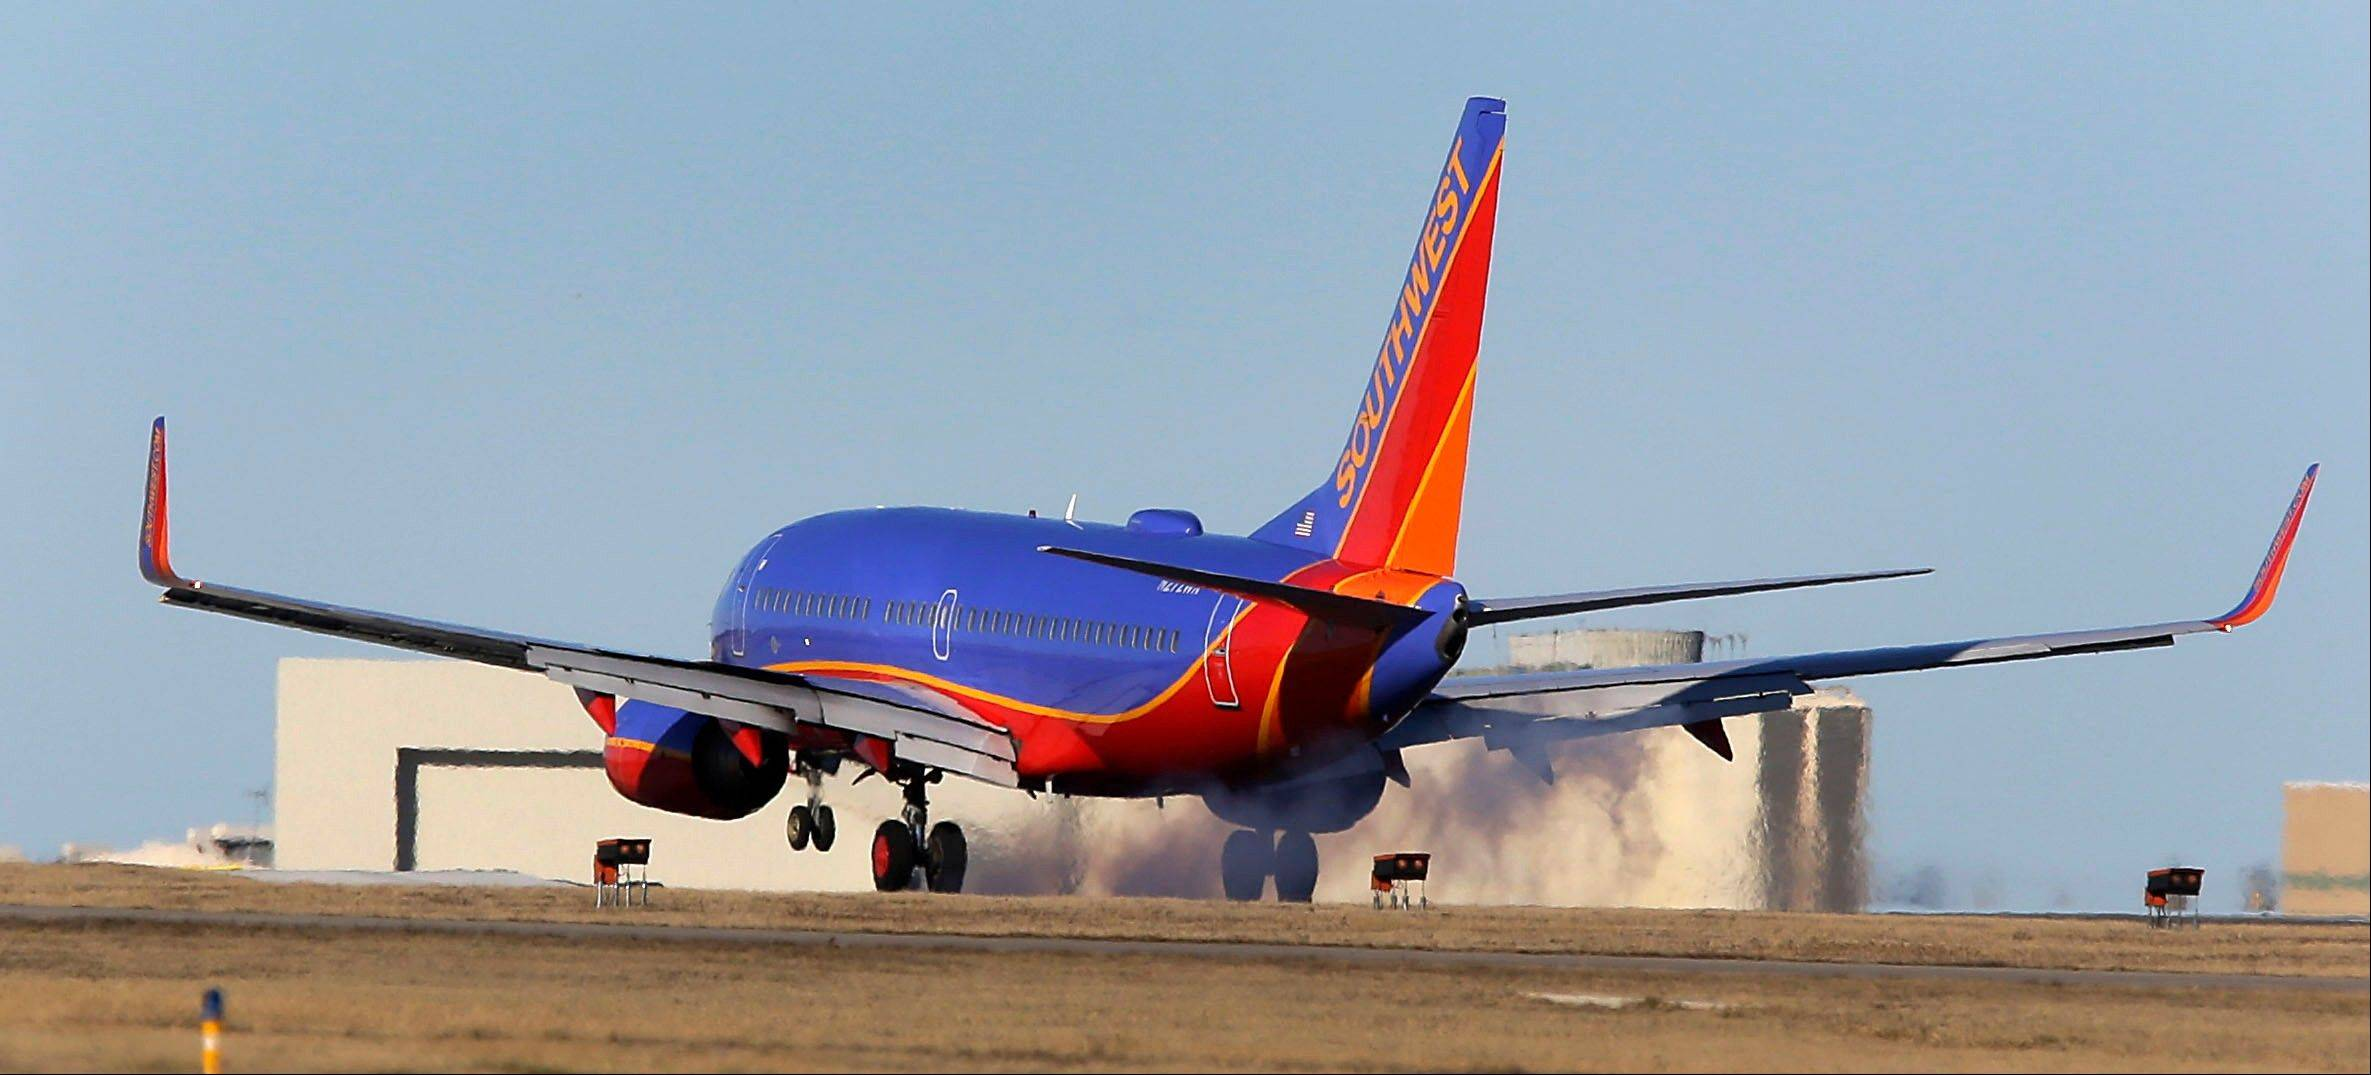 A third person in the cockpit of a Southwest Airlines plane that landed at the wrong Missouri airport was a company dispatcher who had authority to be there, airline officials said Tuesday.